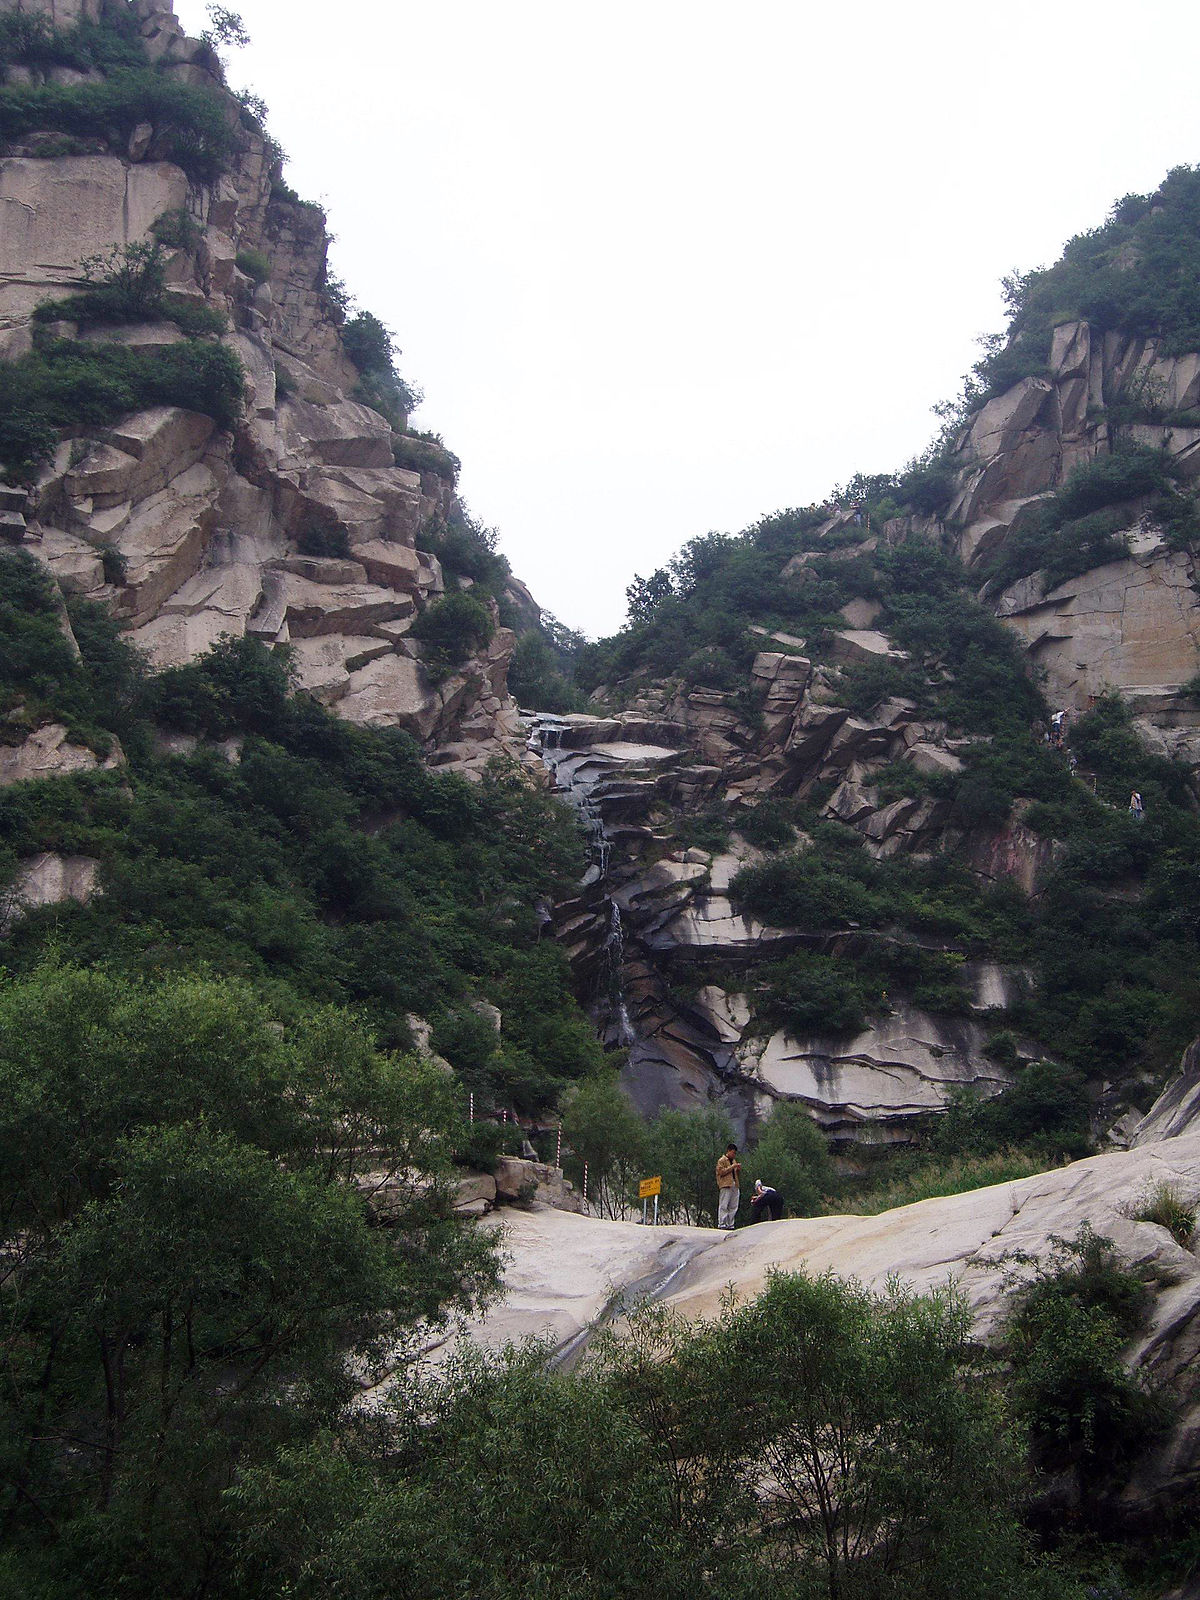 Terms Of Use >> Taihang Shan Mountains - Wikimedia Commons